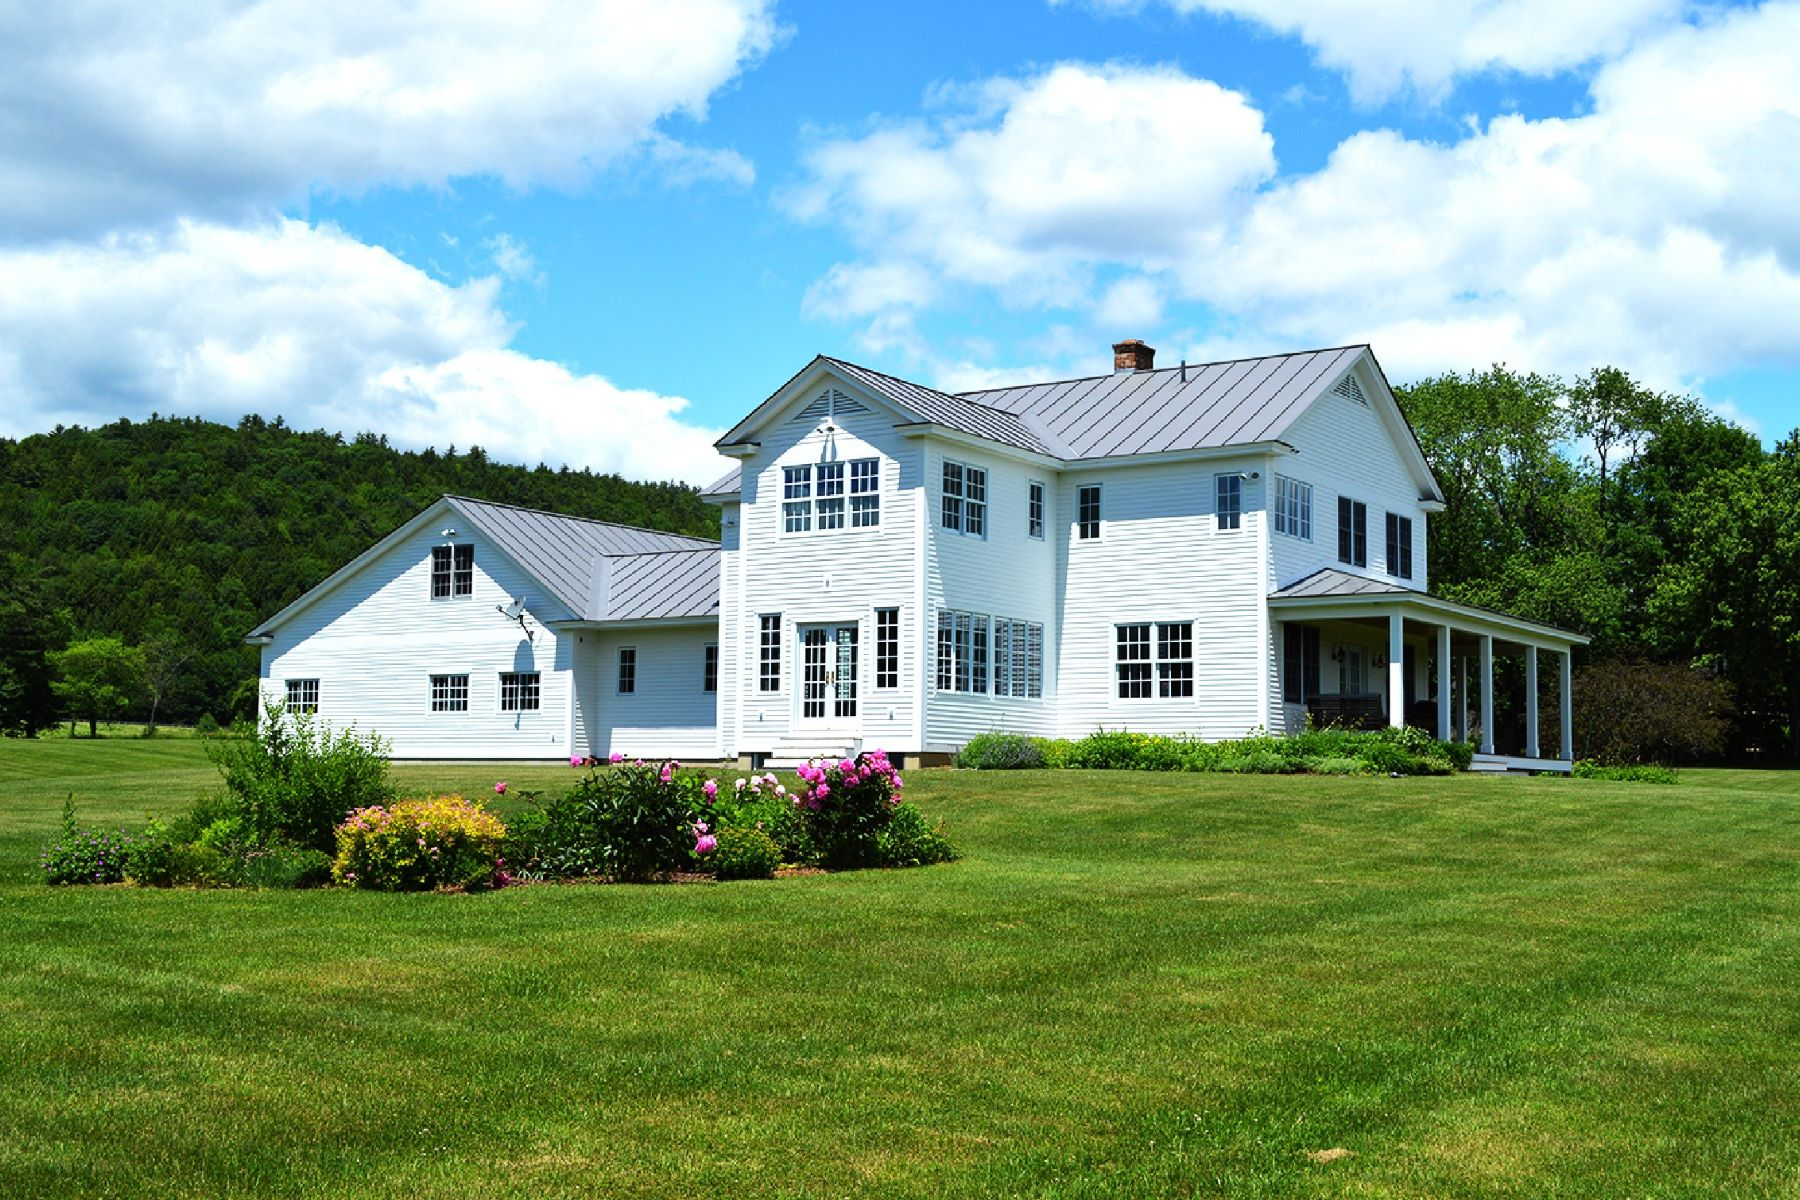 Casa Unifamiliar por un Venta en Beautiful home on 13 acres in Thetford 227 Schoolhouse Hill Rd Thetford, Vermont, 05075 Estados Unidos